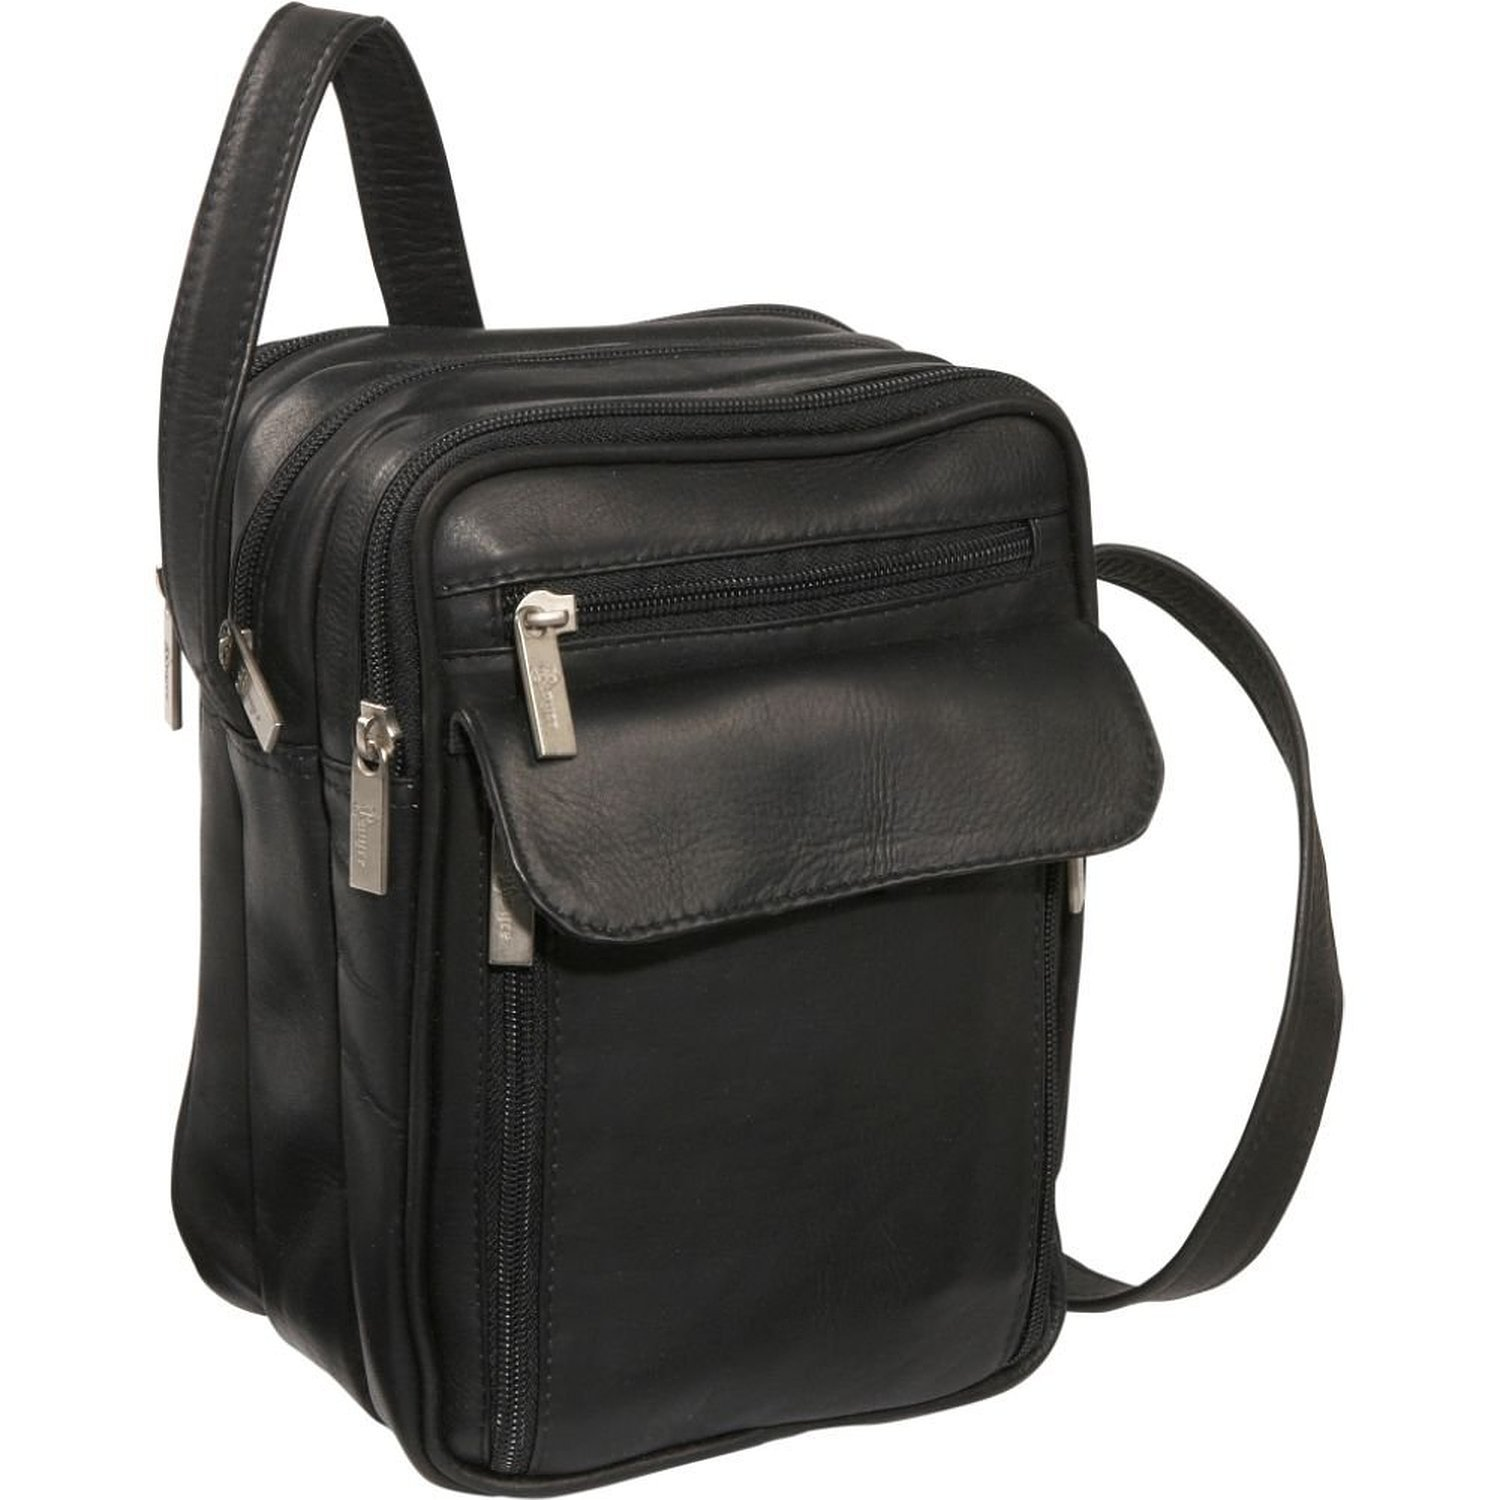 Royce Leather Vaquetta Men's Bag (Black)